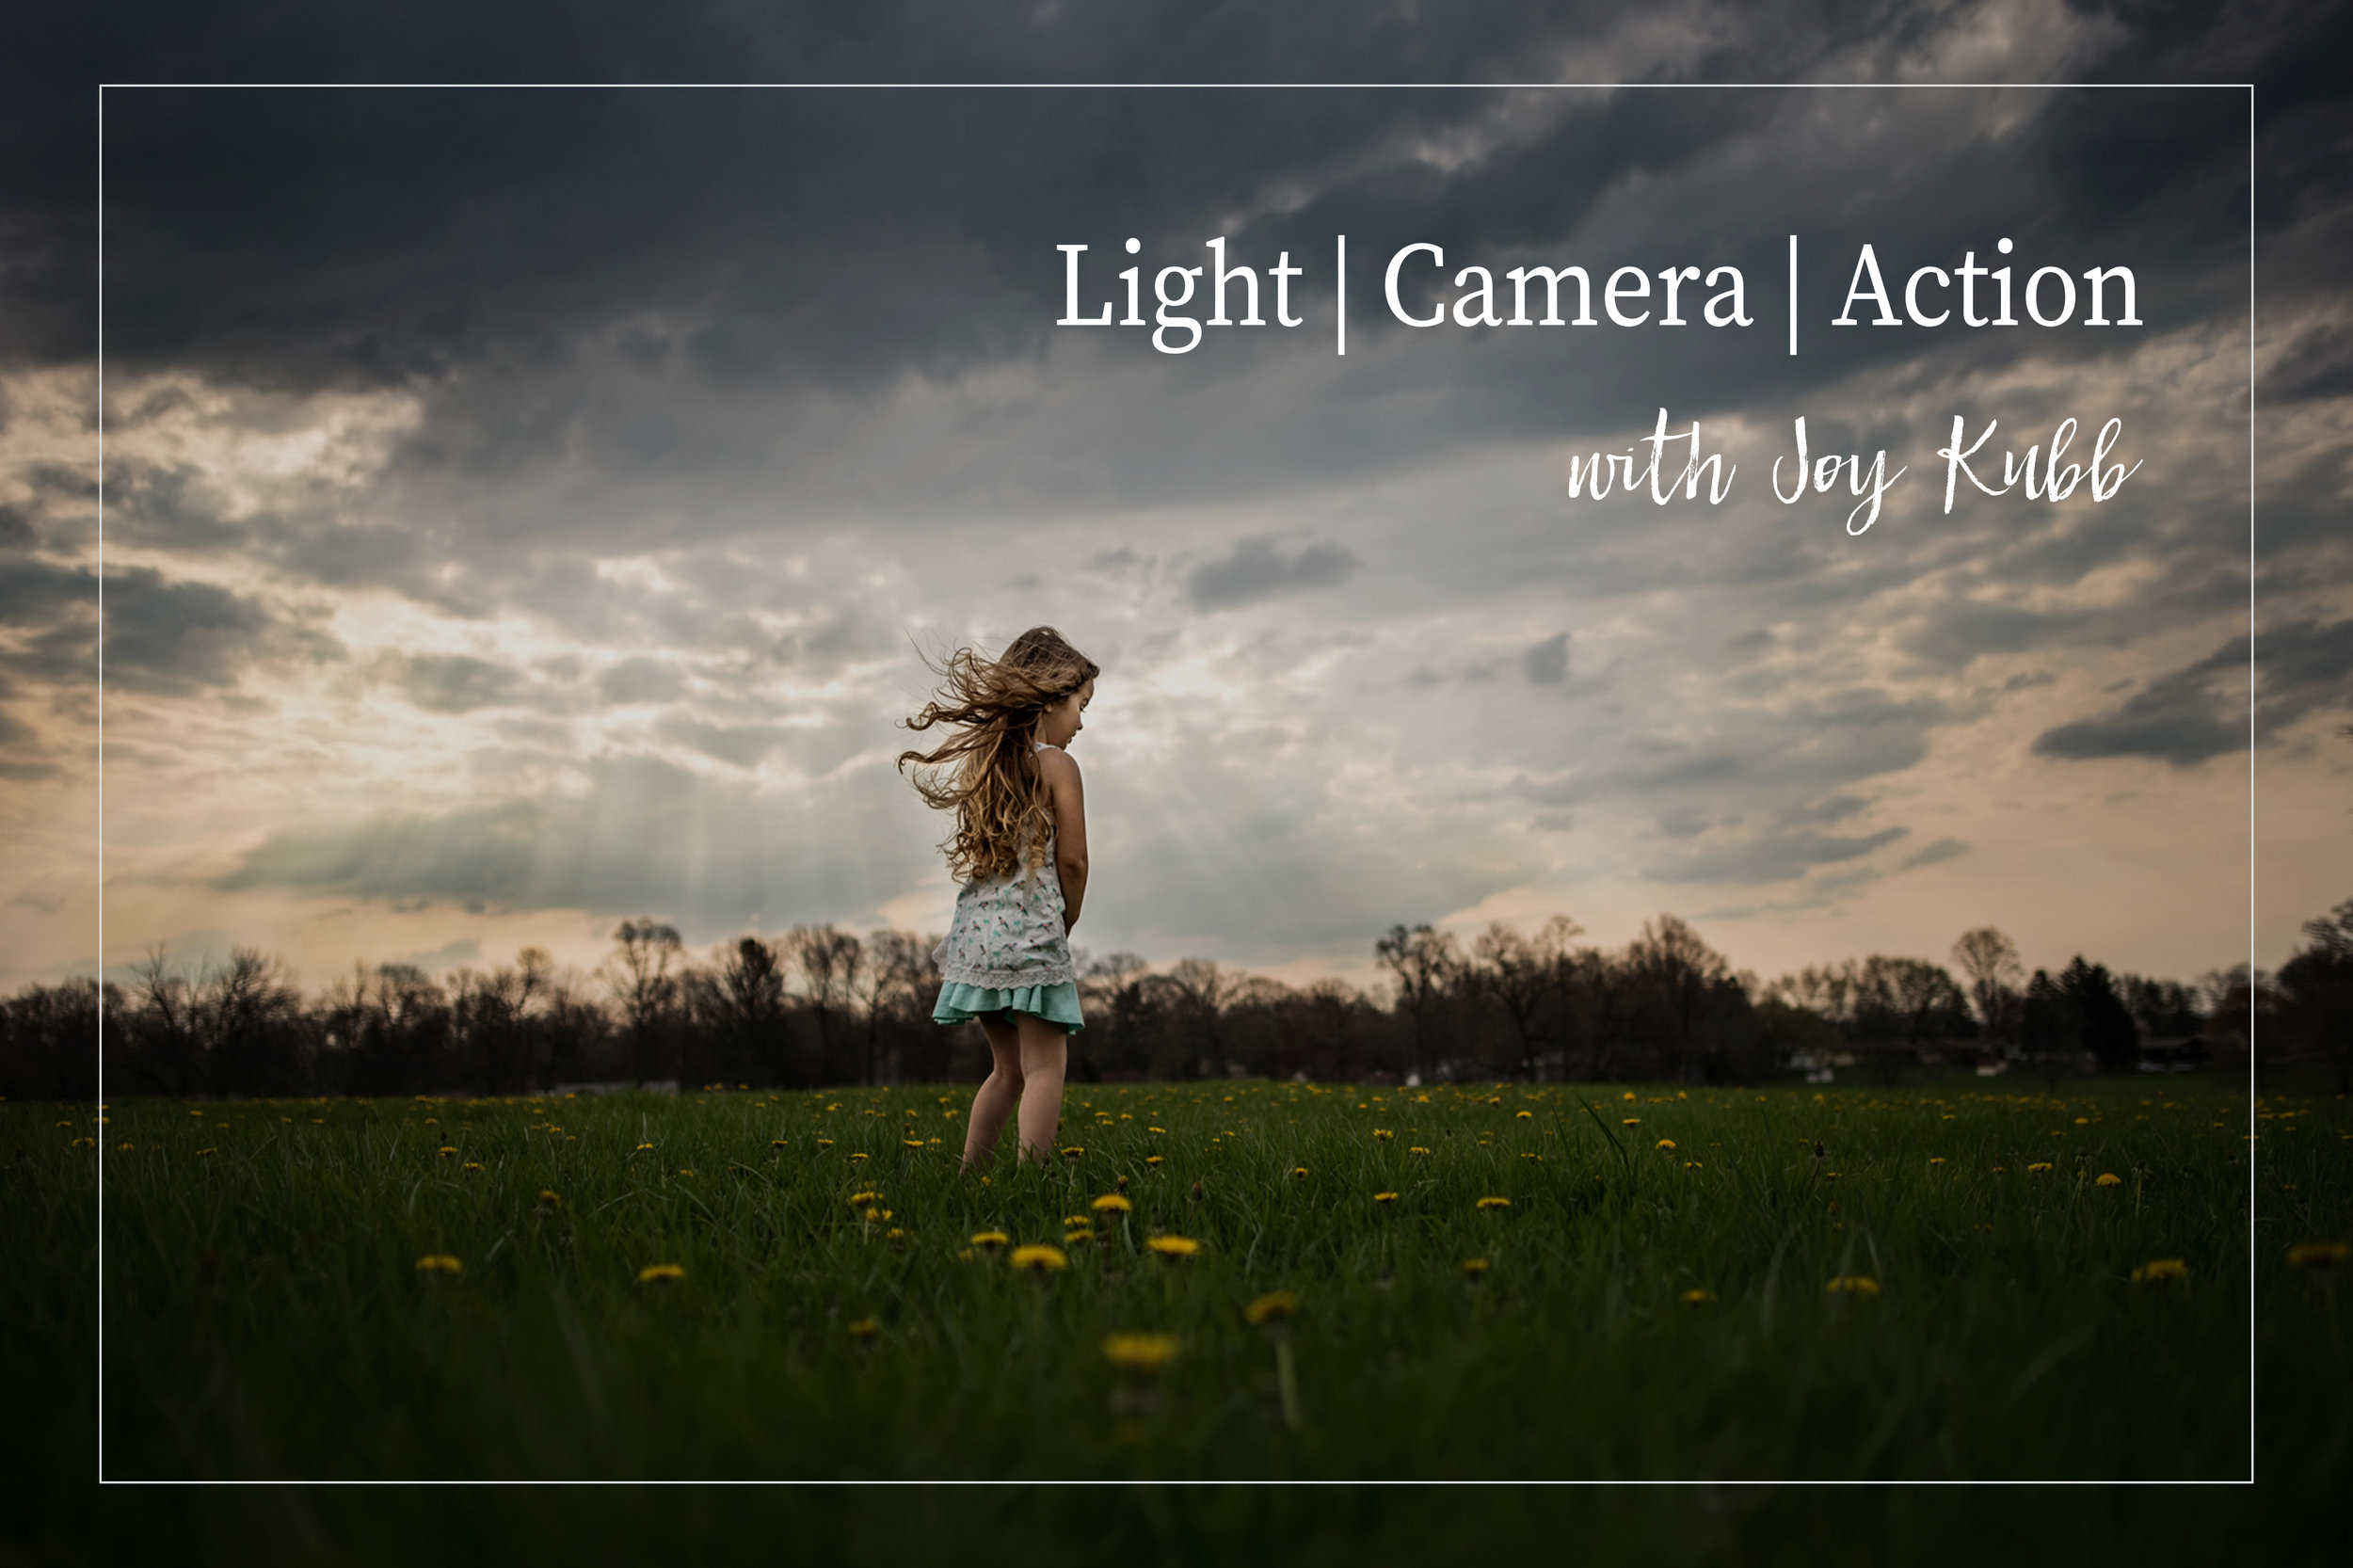 Light | Camera | Action - with Joy Kubb